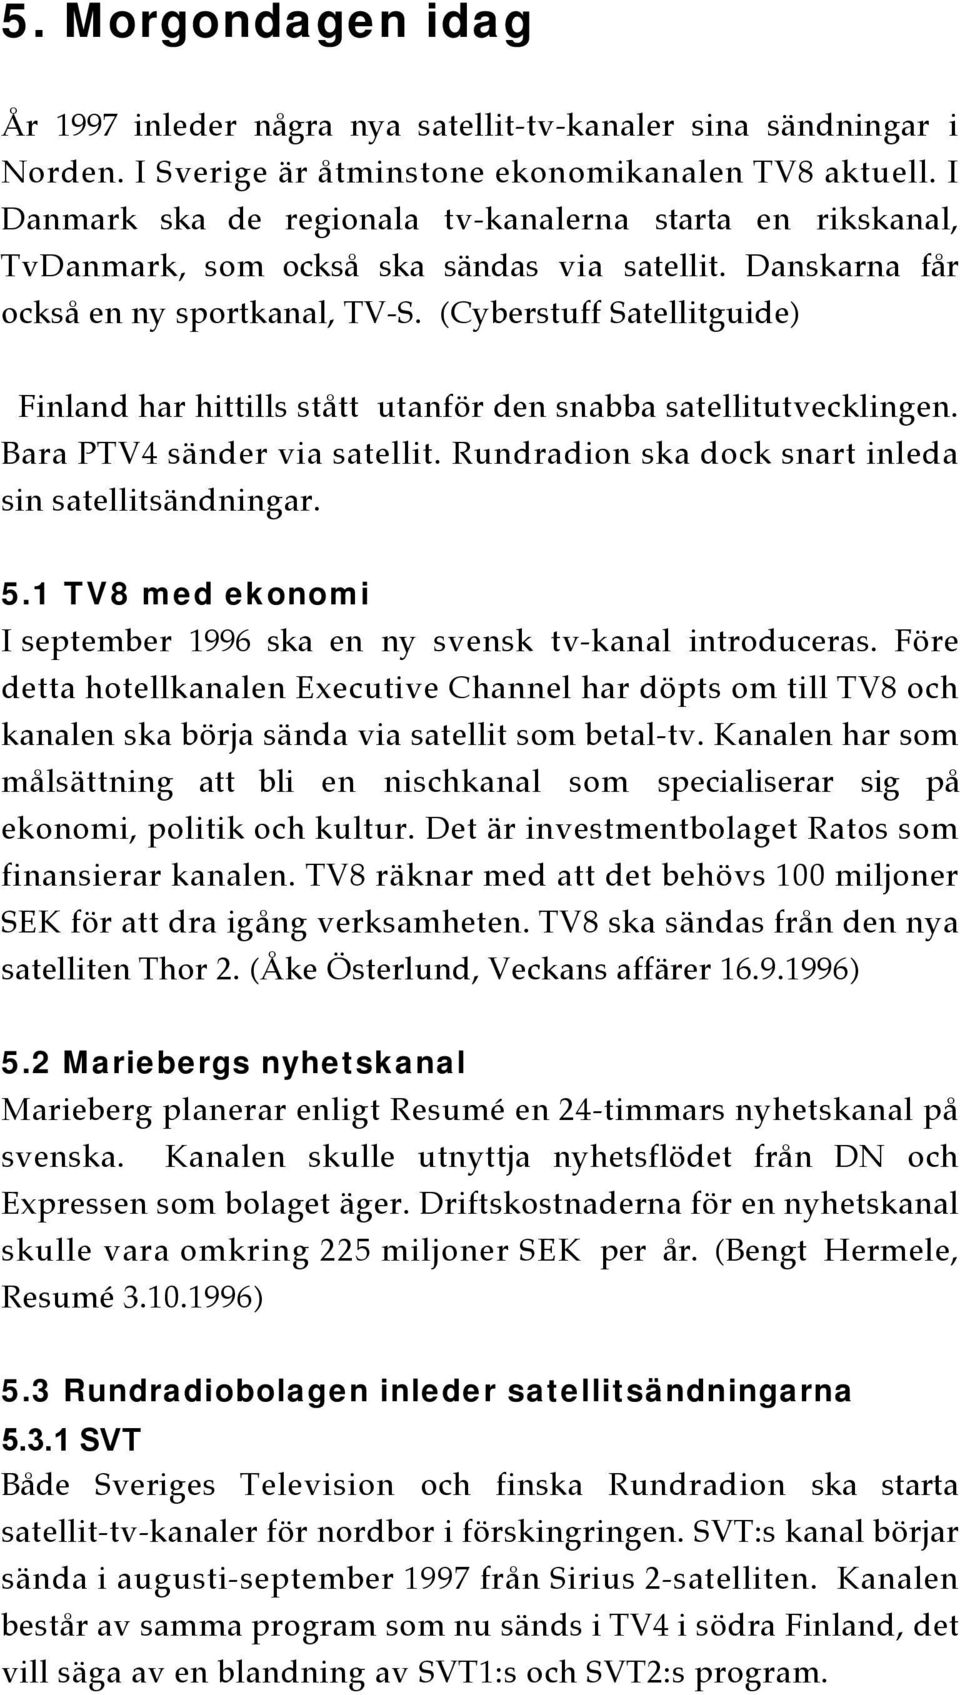 Tv 4 planerar ny digital kanal